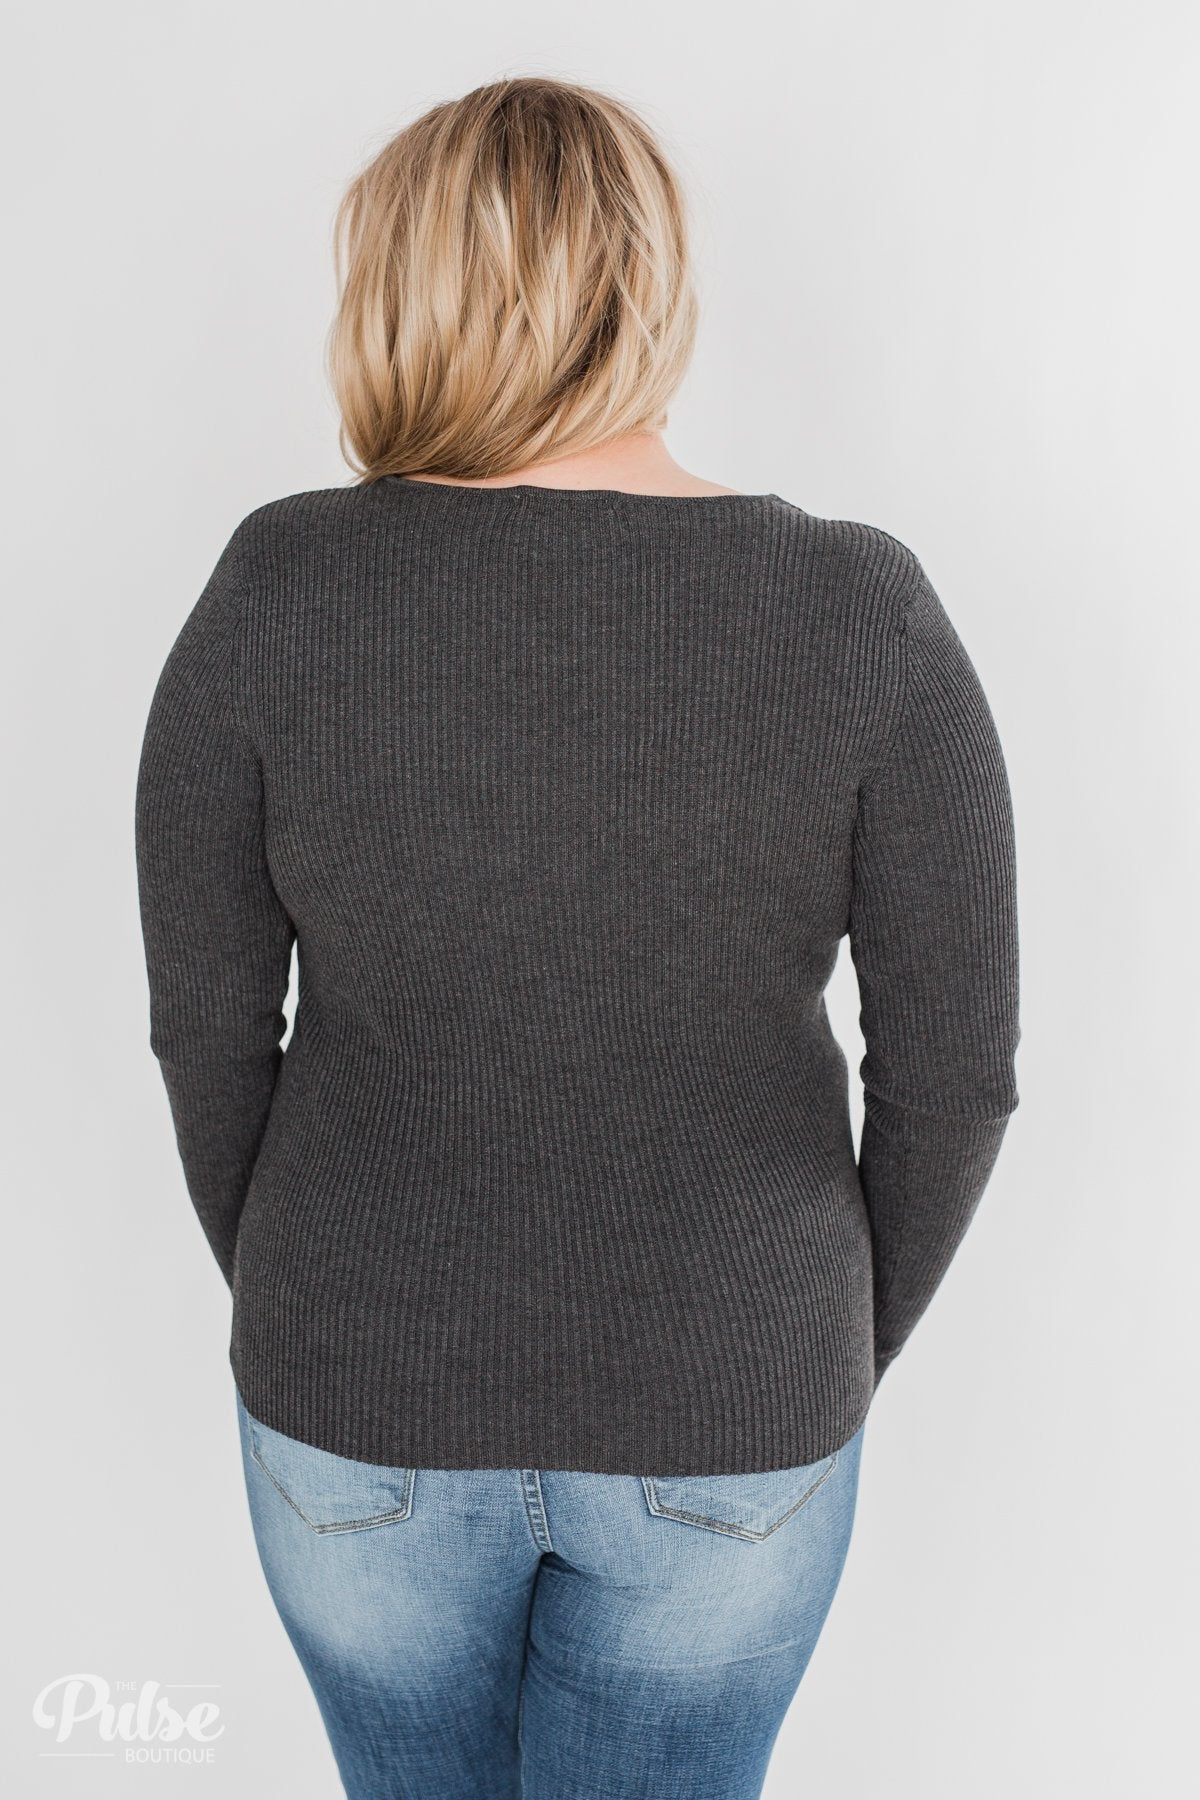 Fitted V-Neck Long Sleeve Top - Charcoal